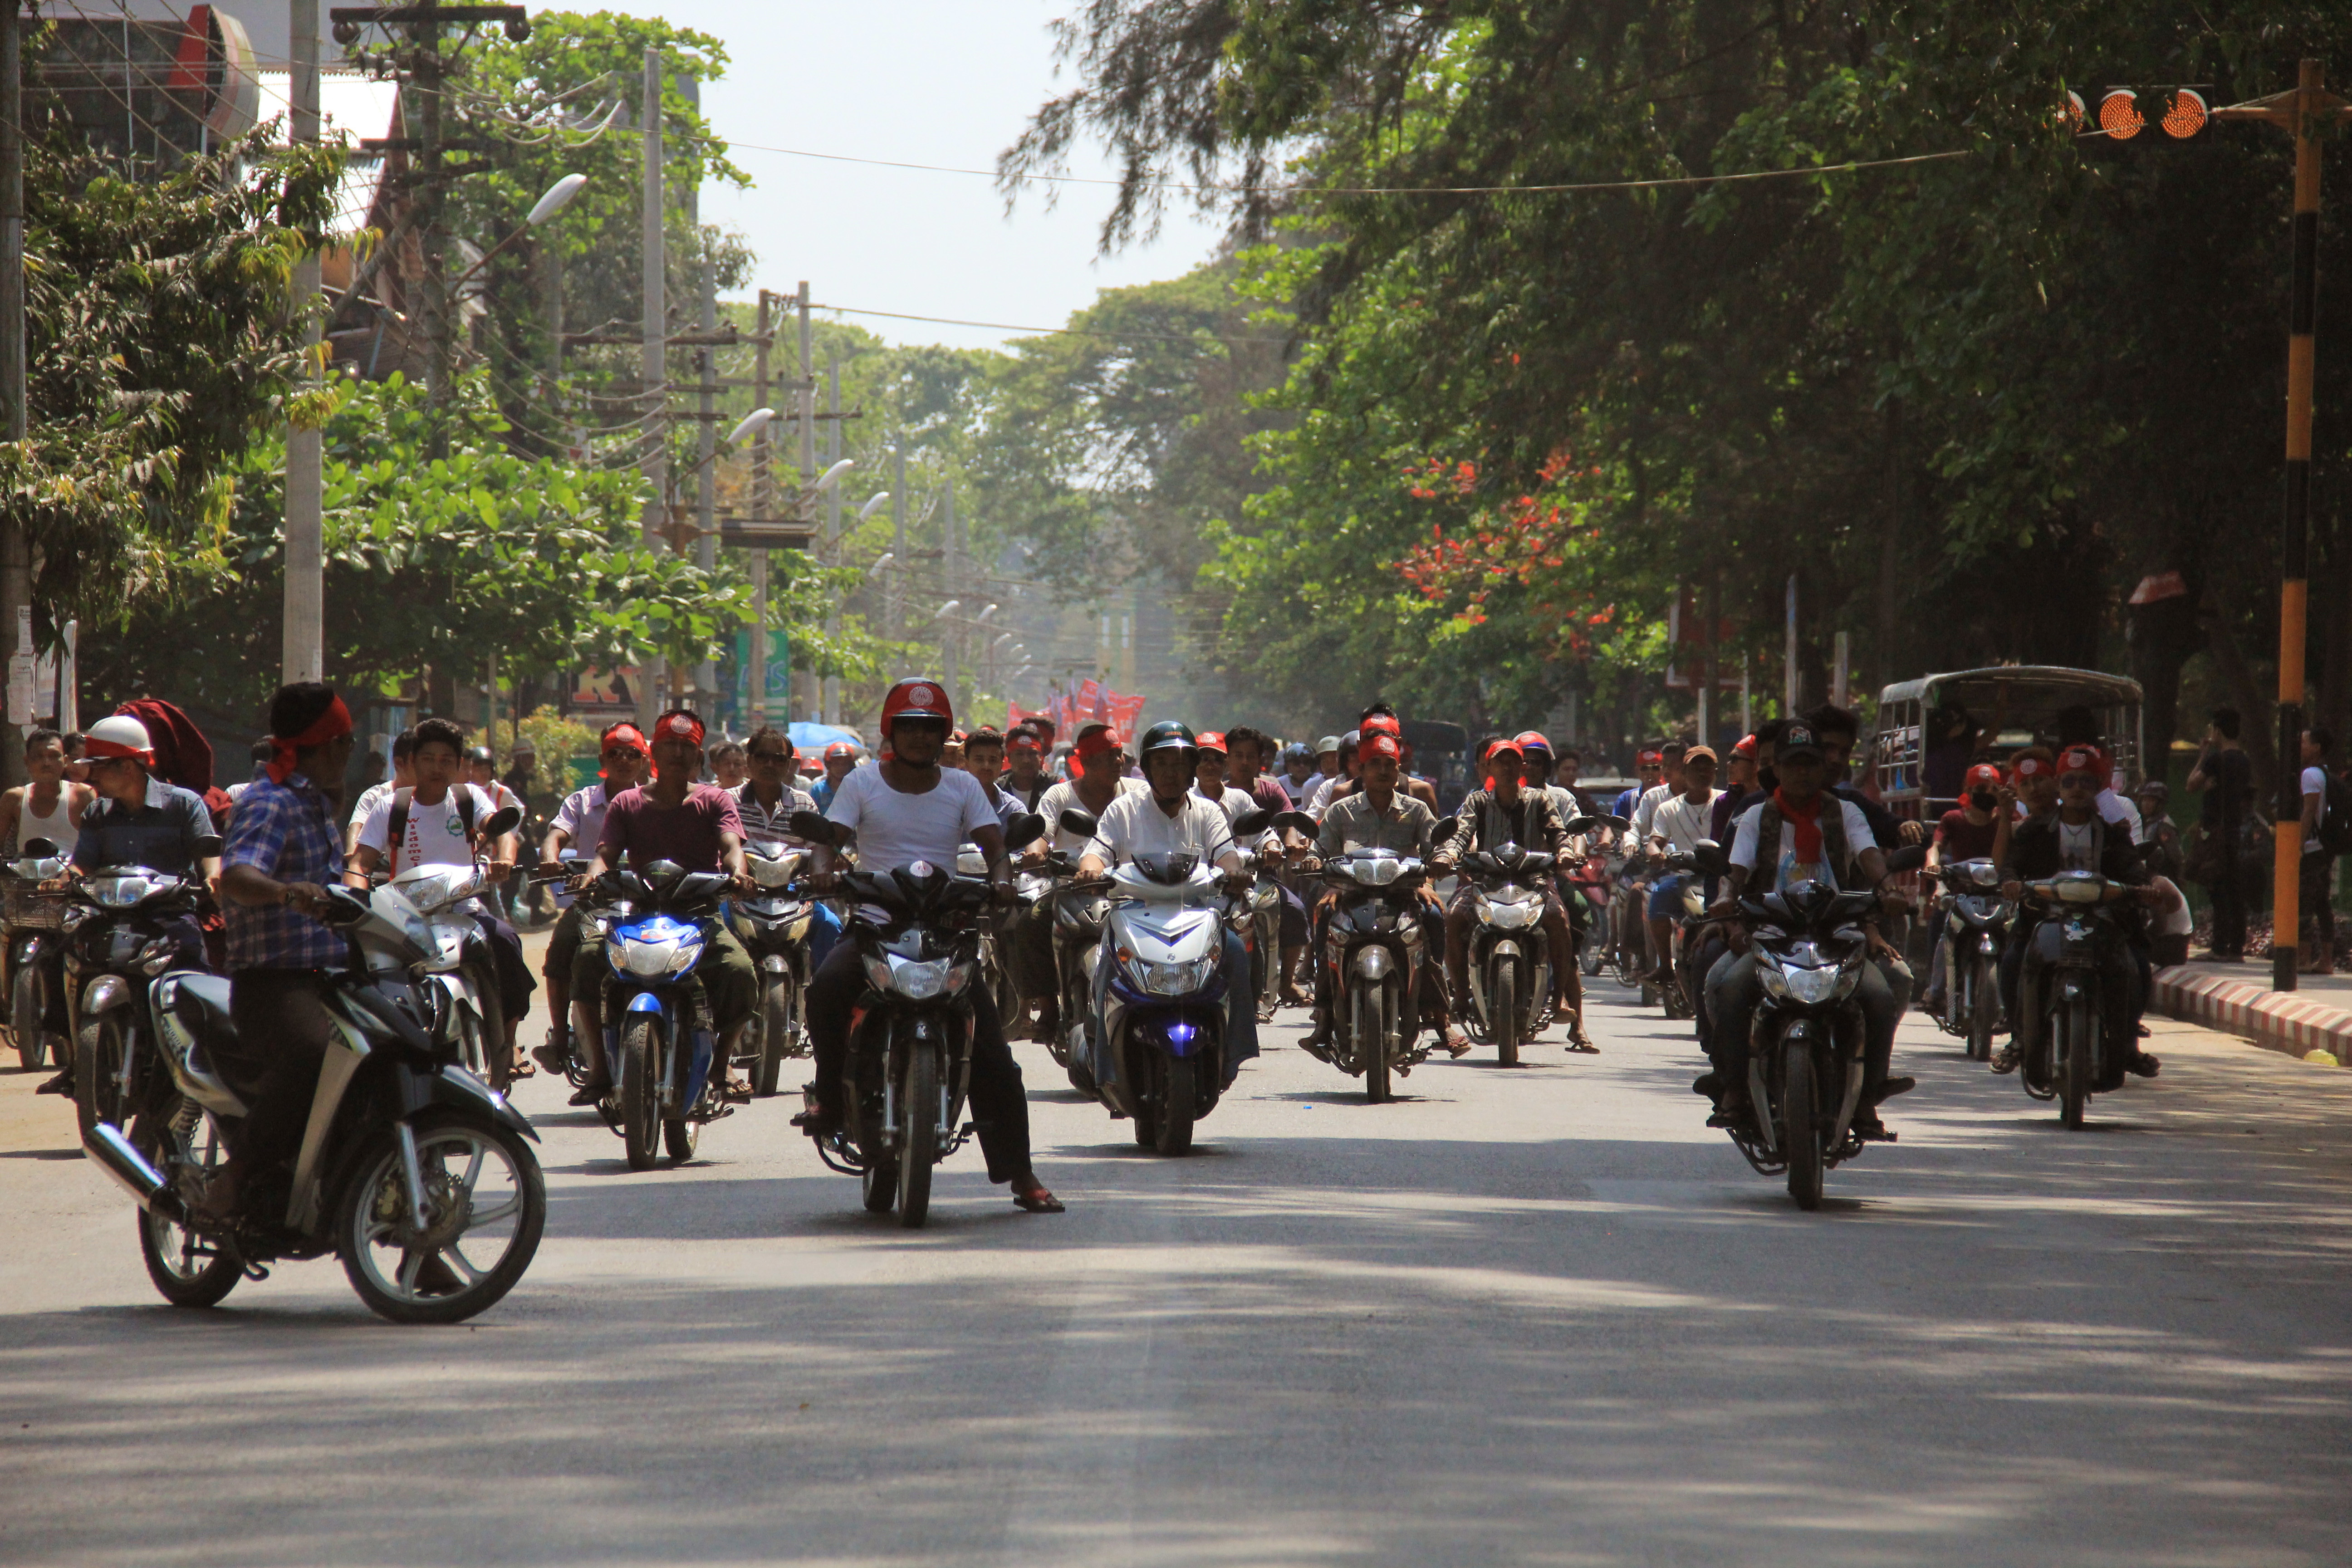 Hard-line Buddhists ride on motorbikes during a protest march, led by Rakhine State's dominant Arakan National Party, against the government's plan to give citizenship to some members of the persecuted Rohingya Muslim minority community in Sittwe, Ra...